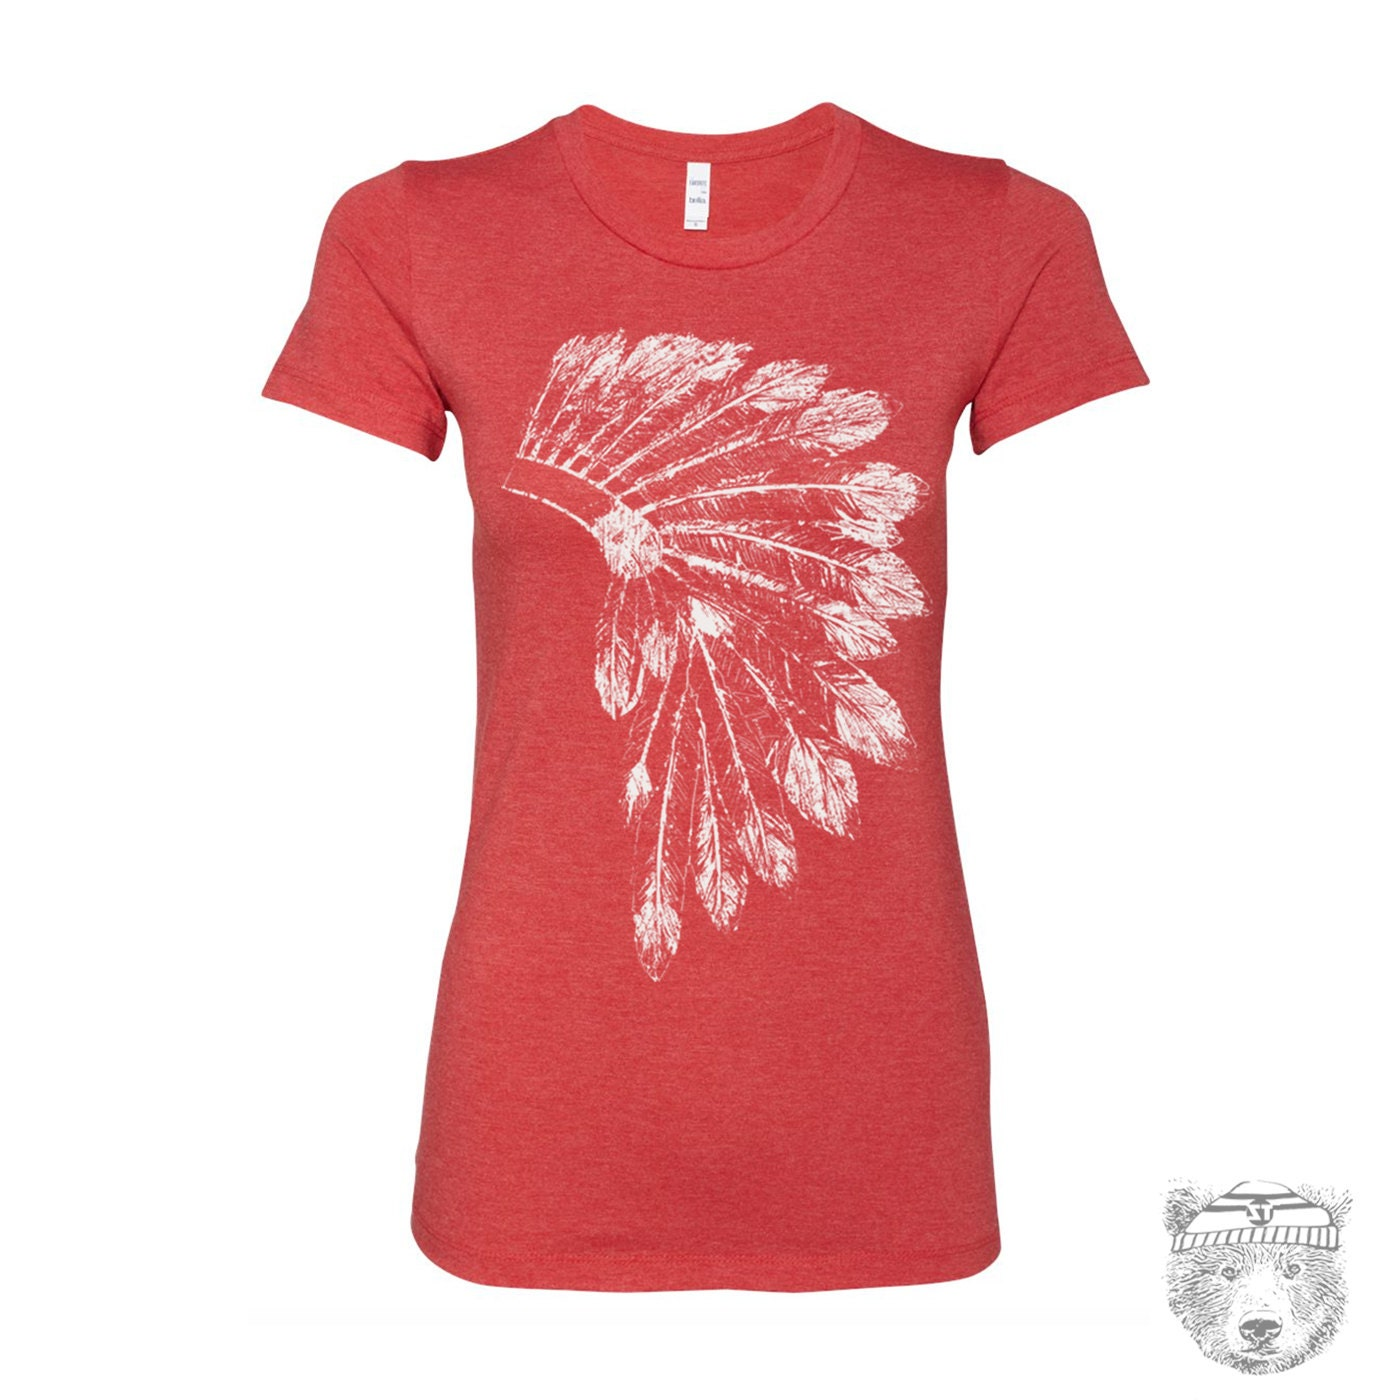 Womens Headdress T Shirt Native American Feathers Design Hand